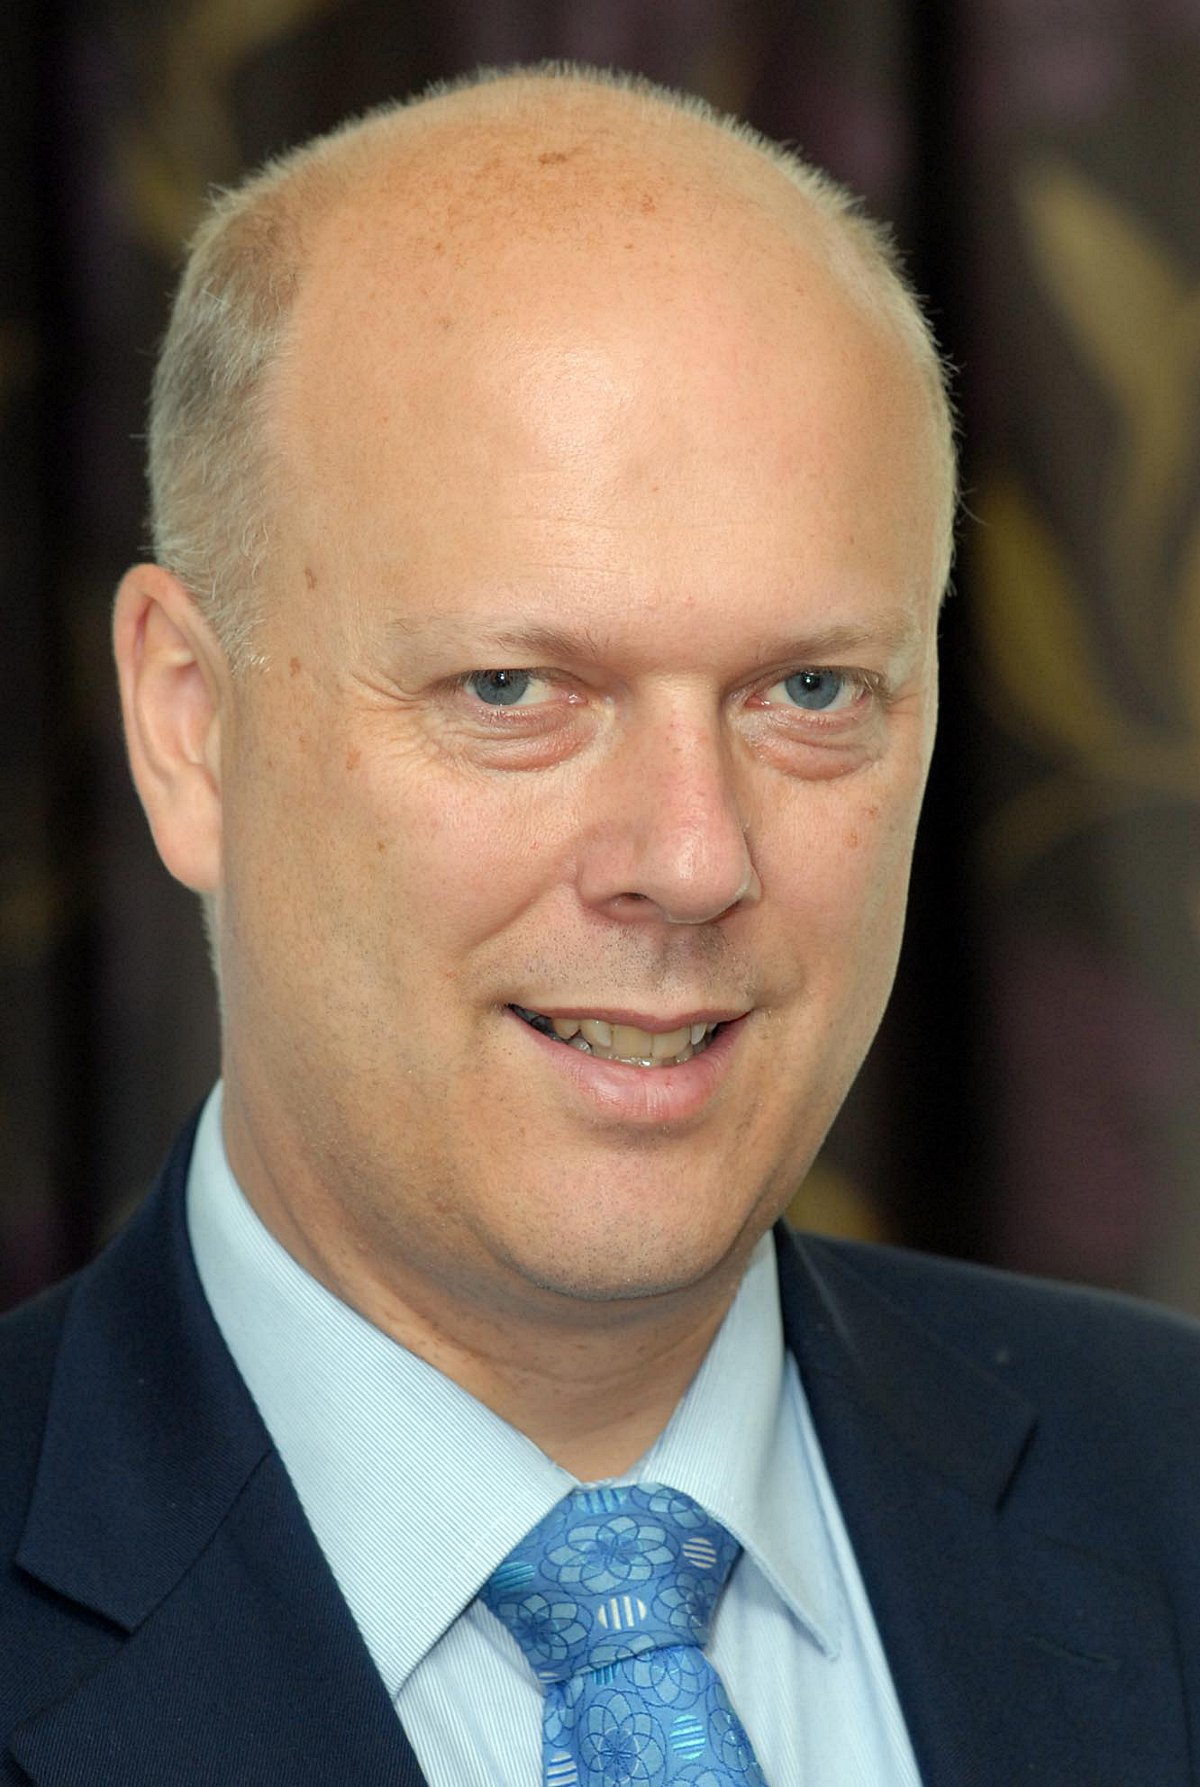 Chris Grayling, MP for Epsom and Ewell and Secretary of State for Justice